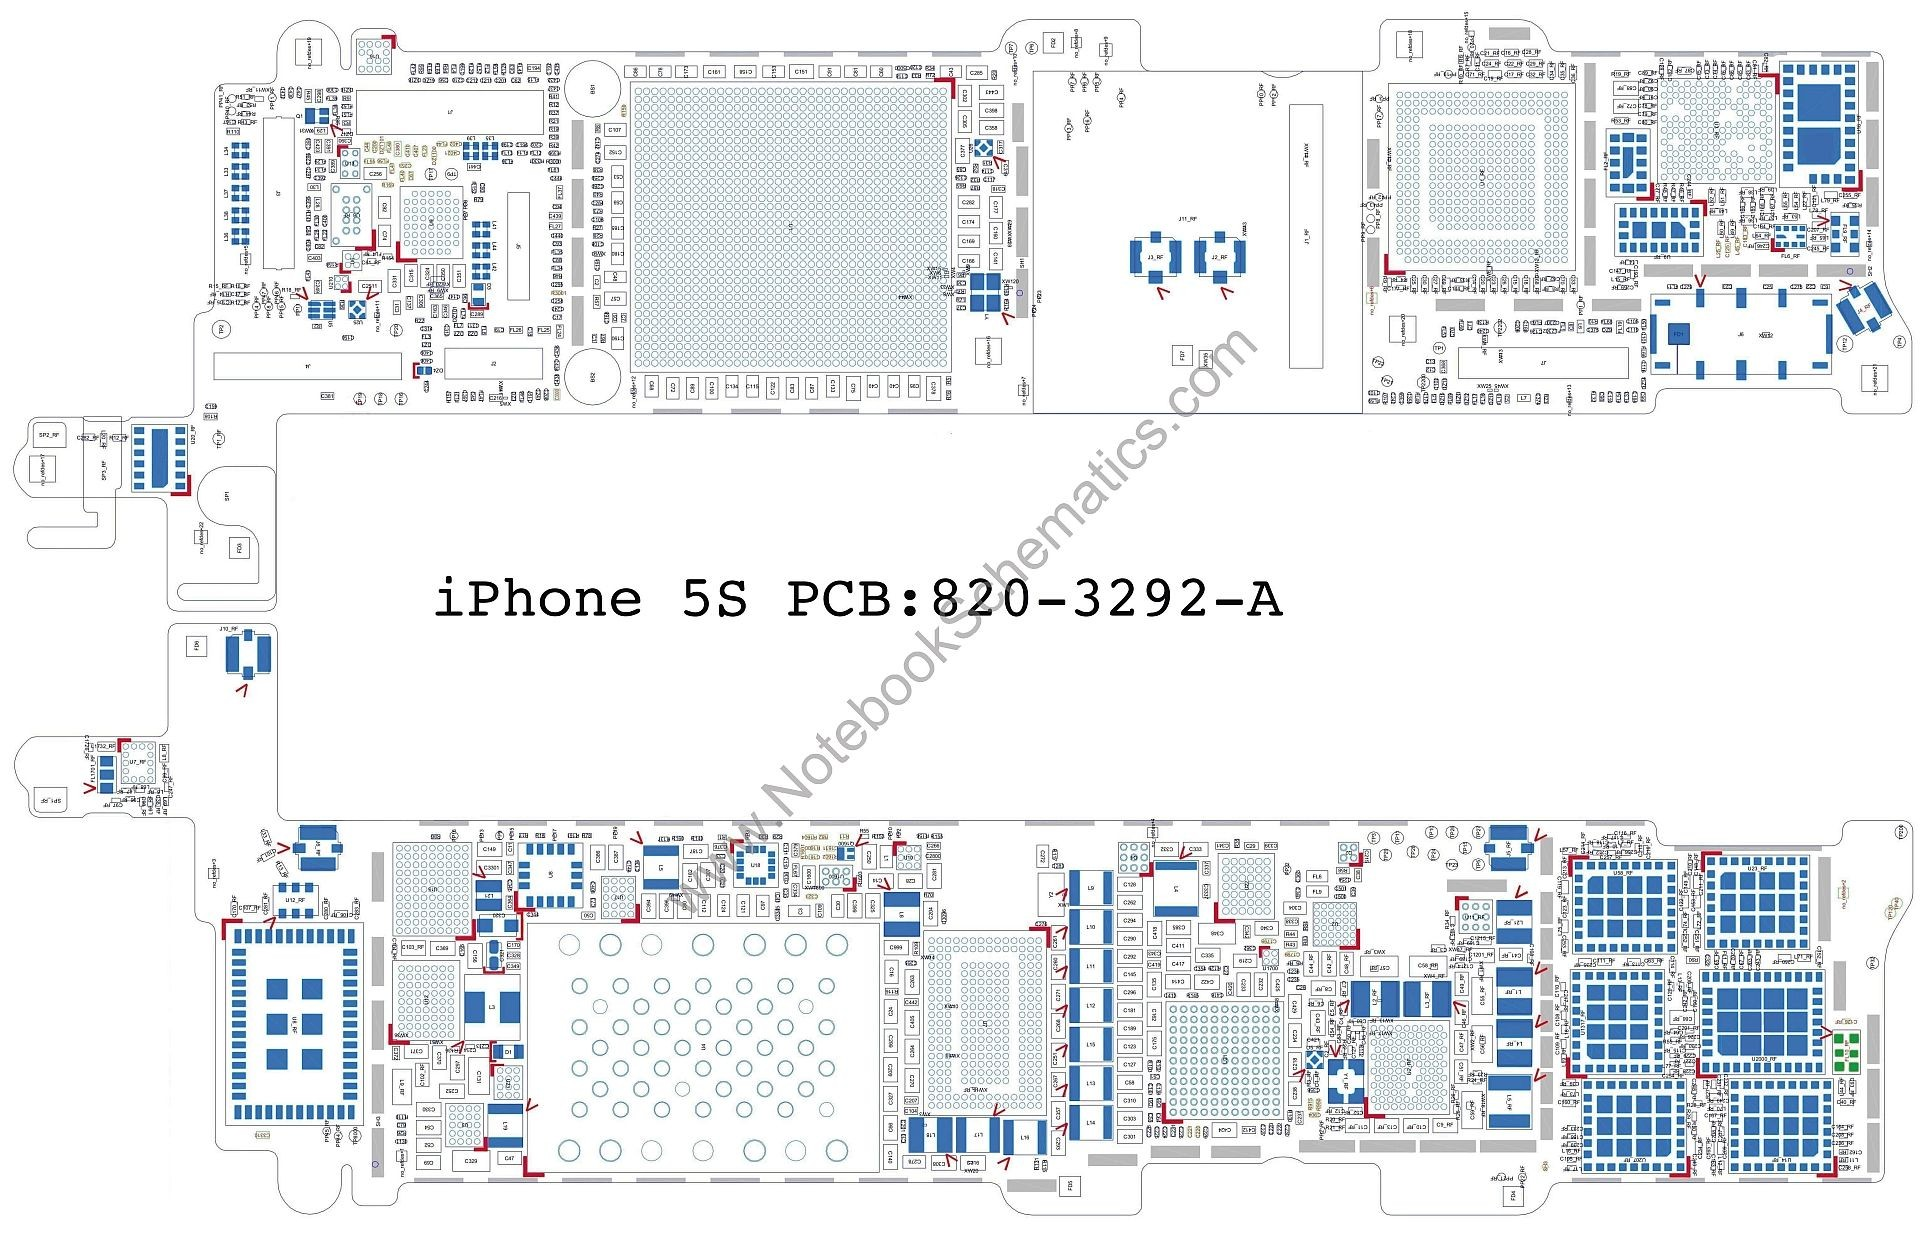 iPhone 5 Internal Structure Diagram